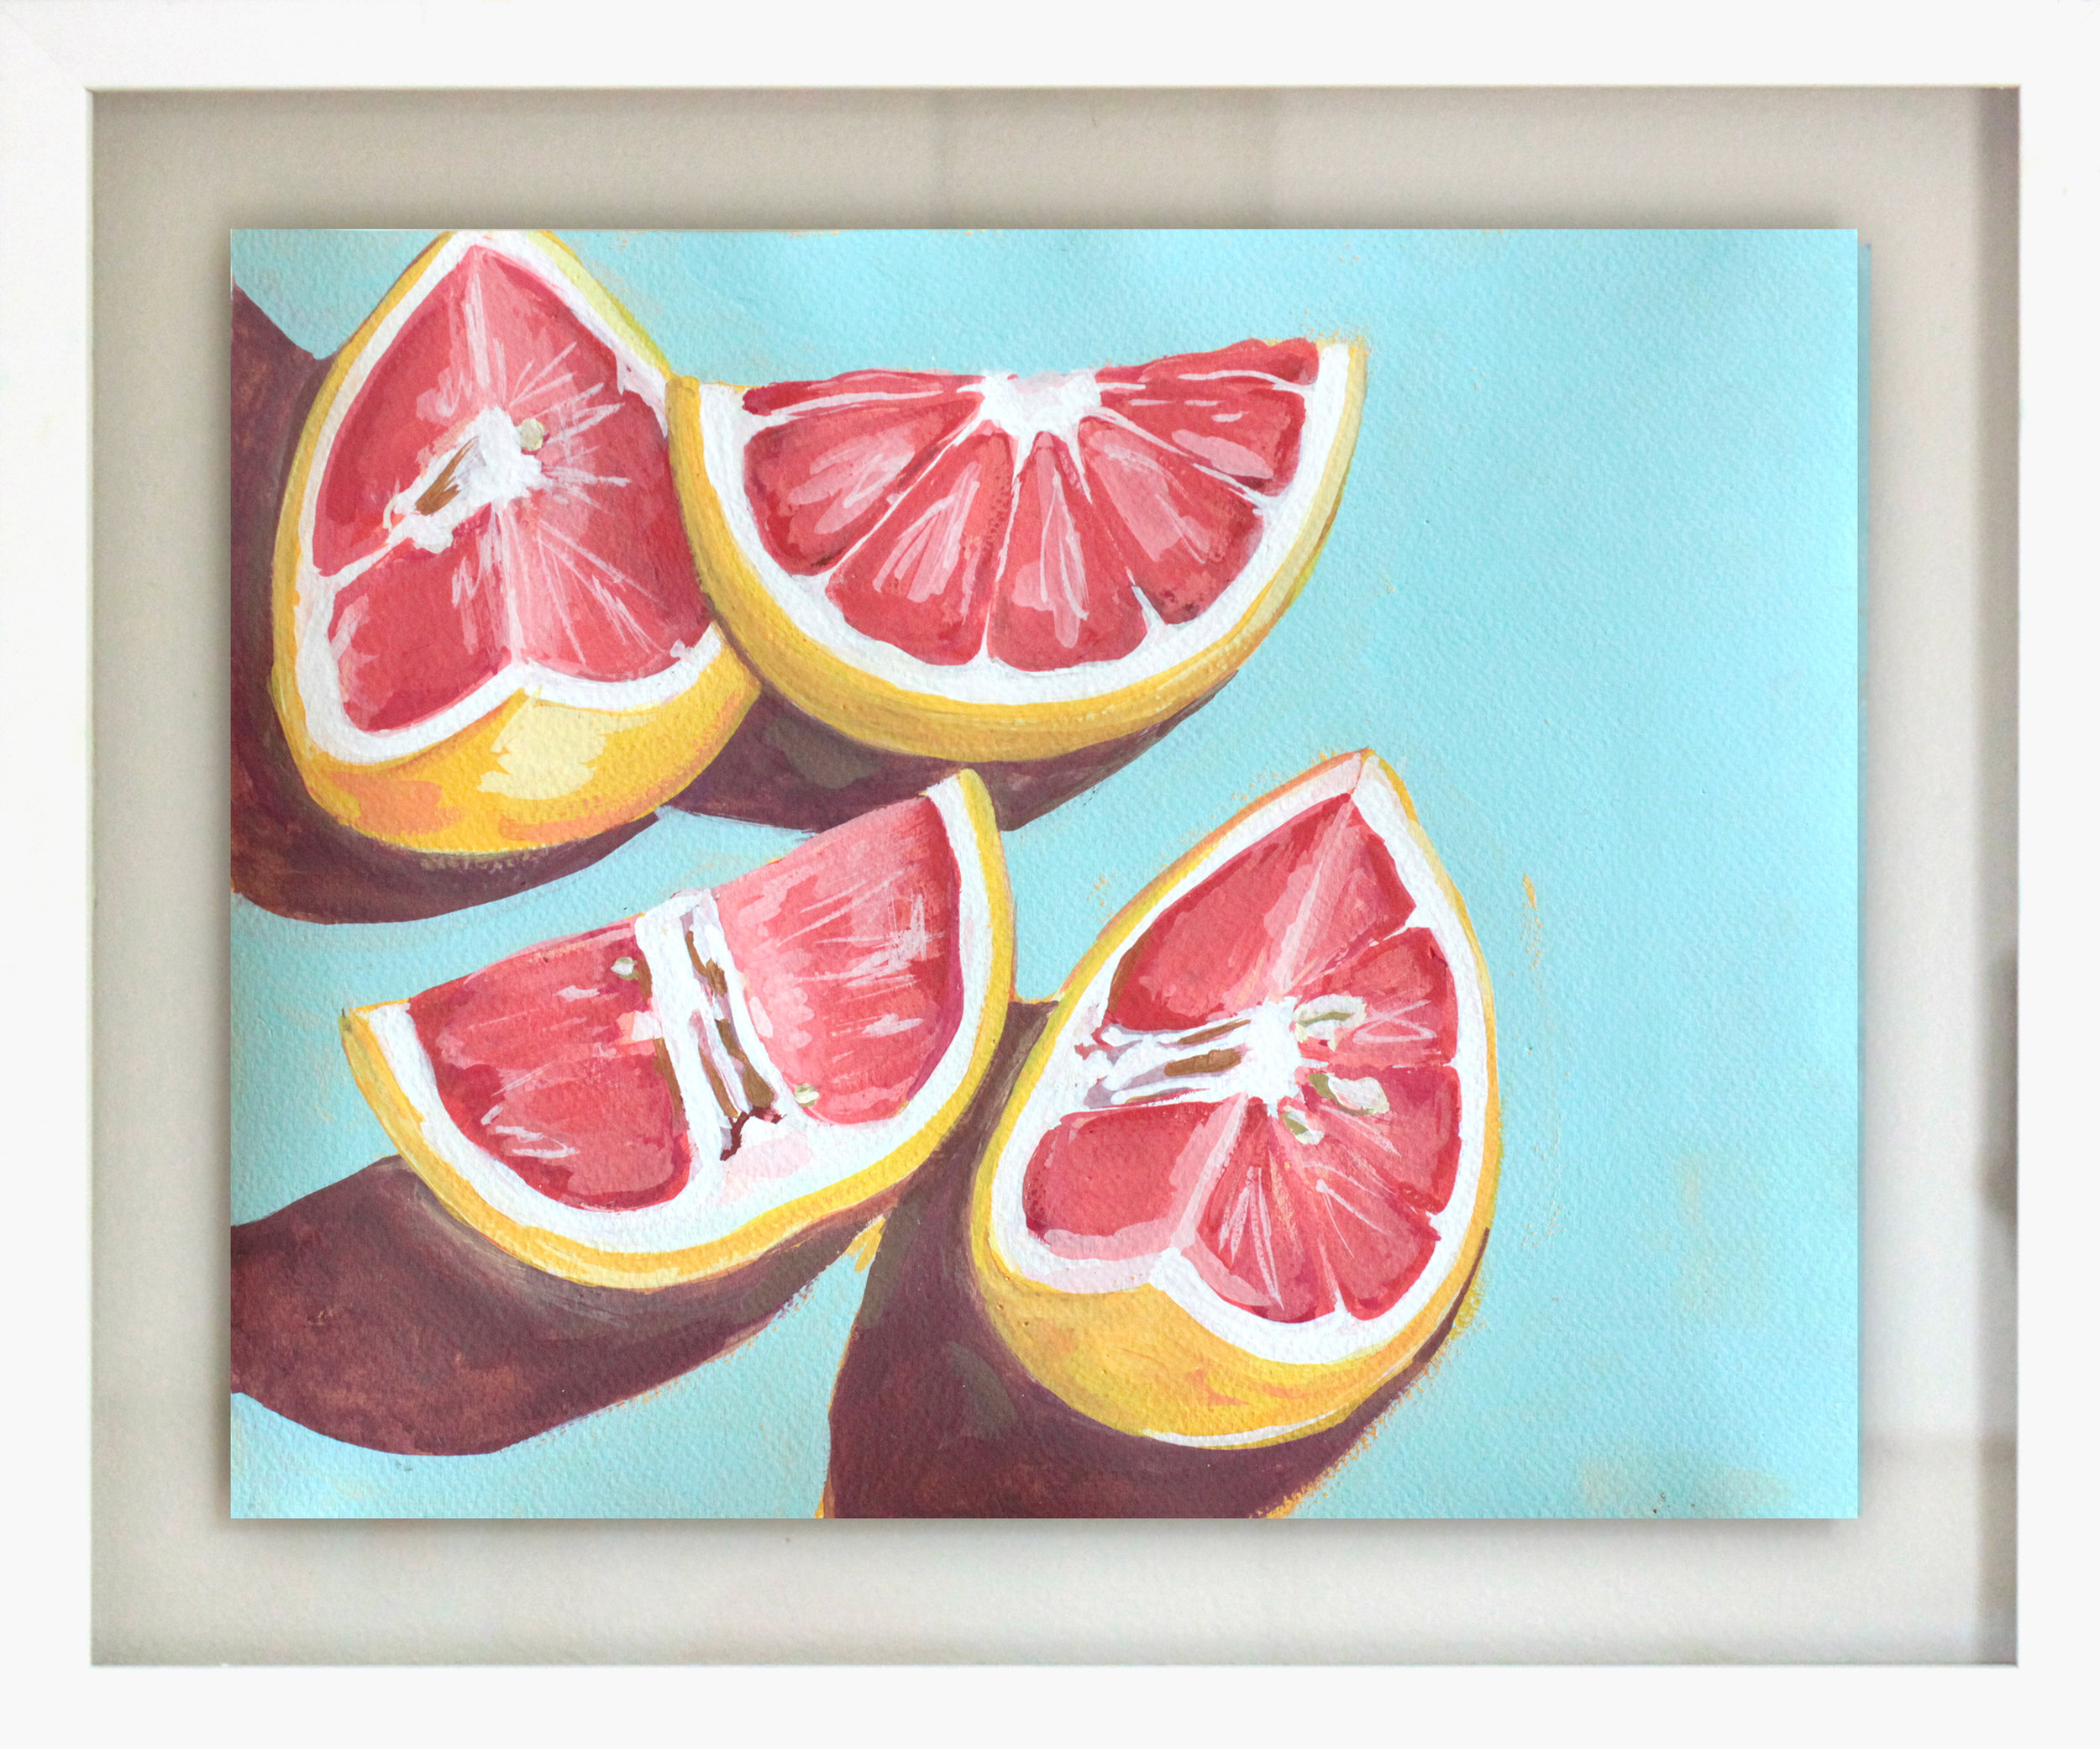 "Grapefruit + Tequila - 15.5"" x 18.5"" gouache on paper, framed$350"